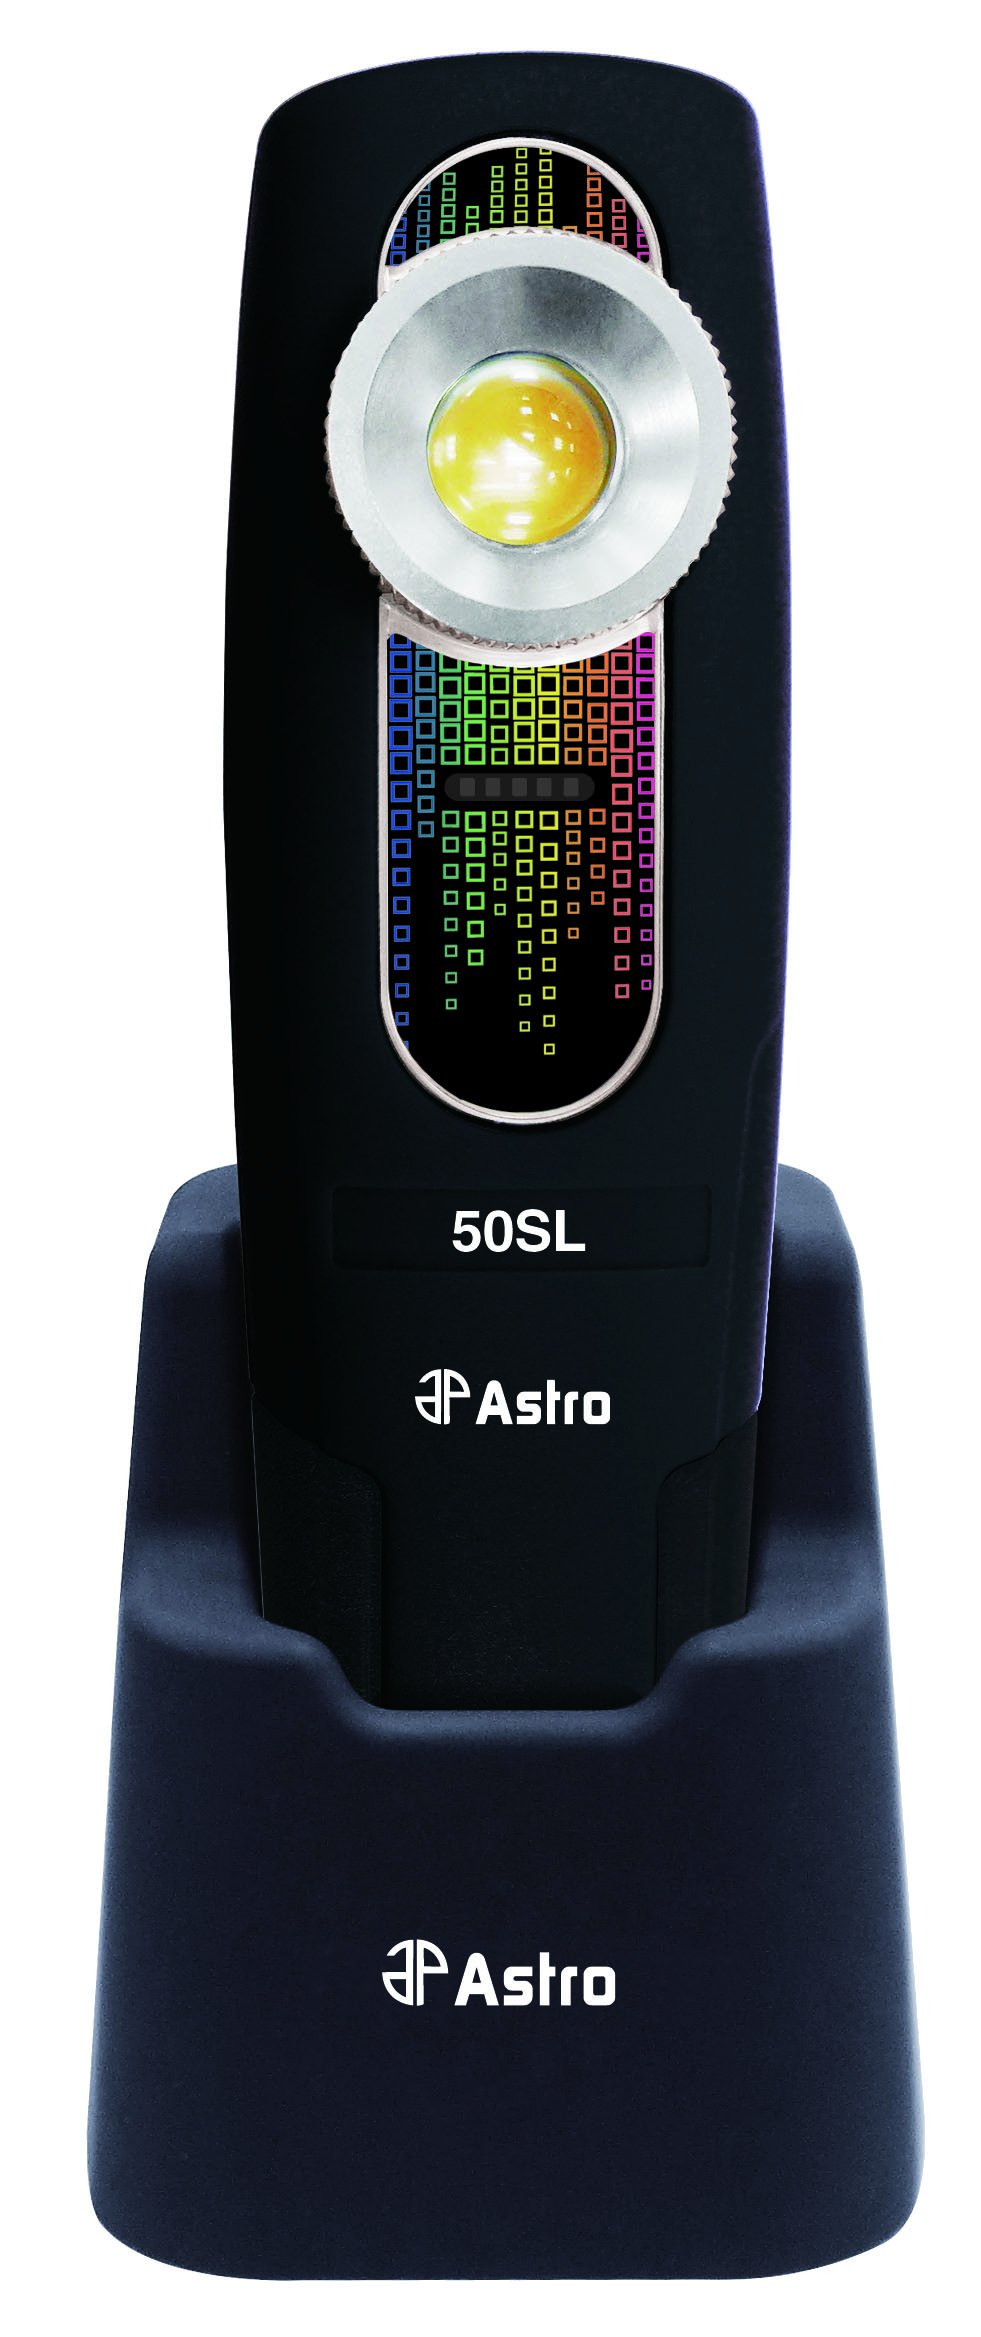 Astro Pneumatic Tool 50SL Sunlight 400 lm CRI 97 Rechargeable Handheld Color Match Light by Astro Pneumatic Tool